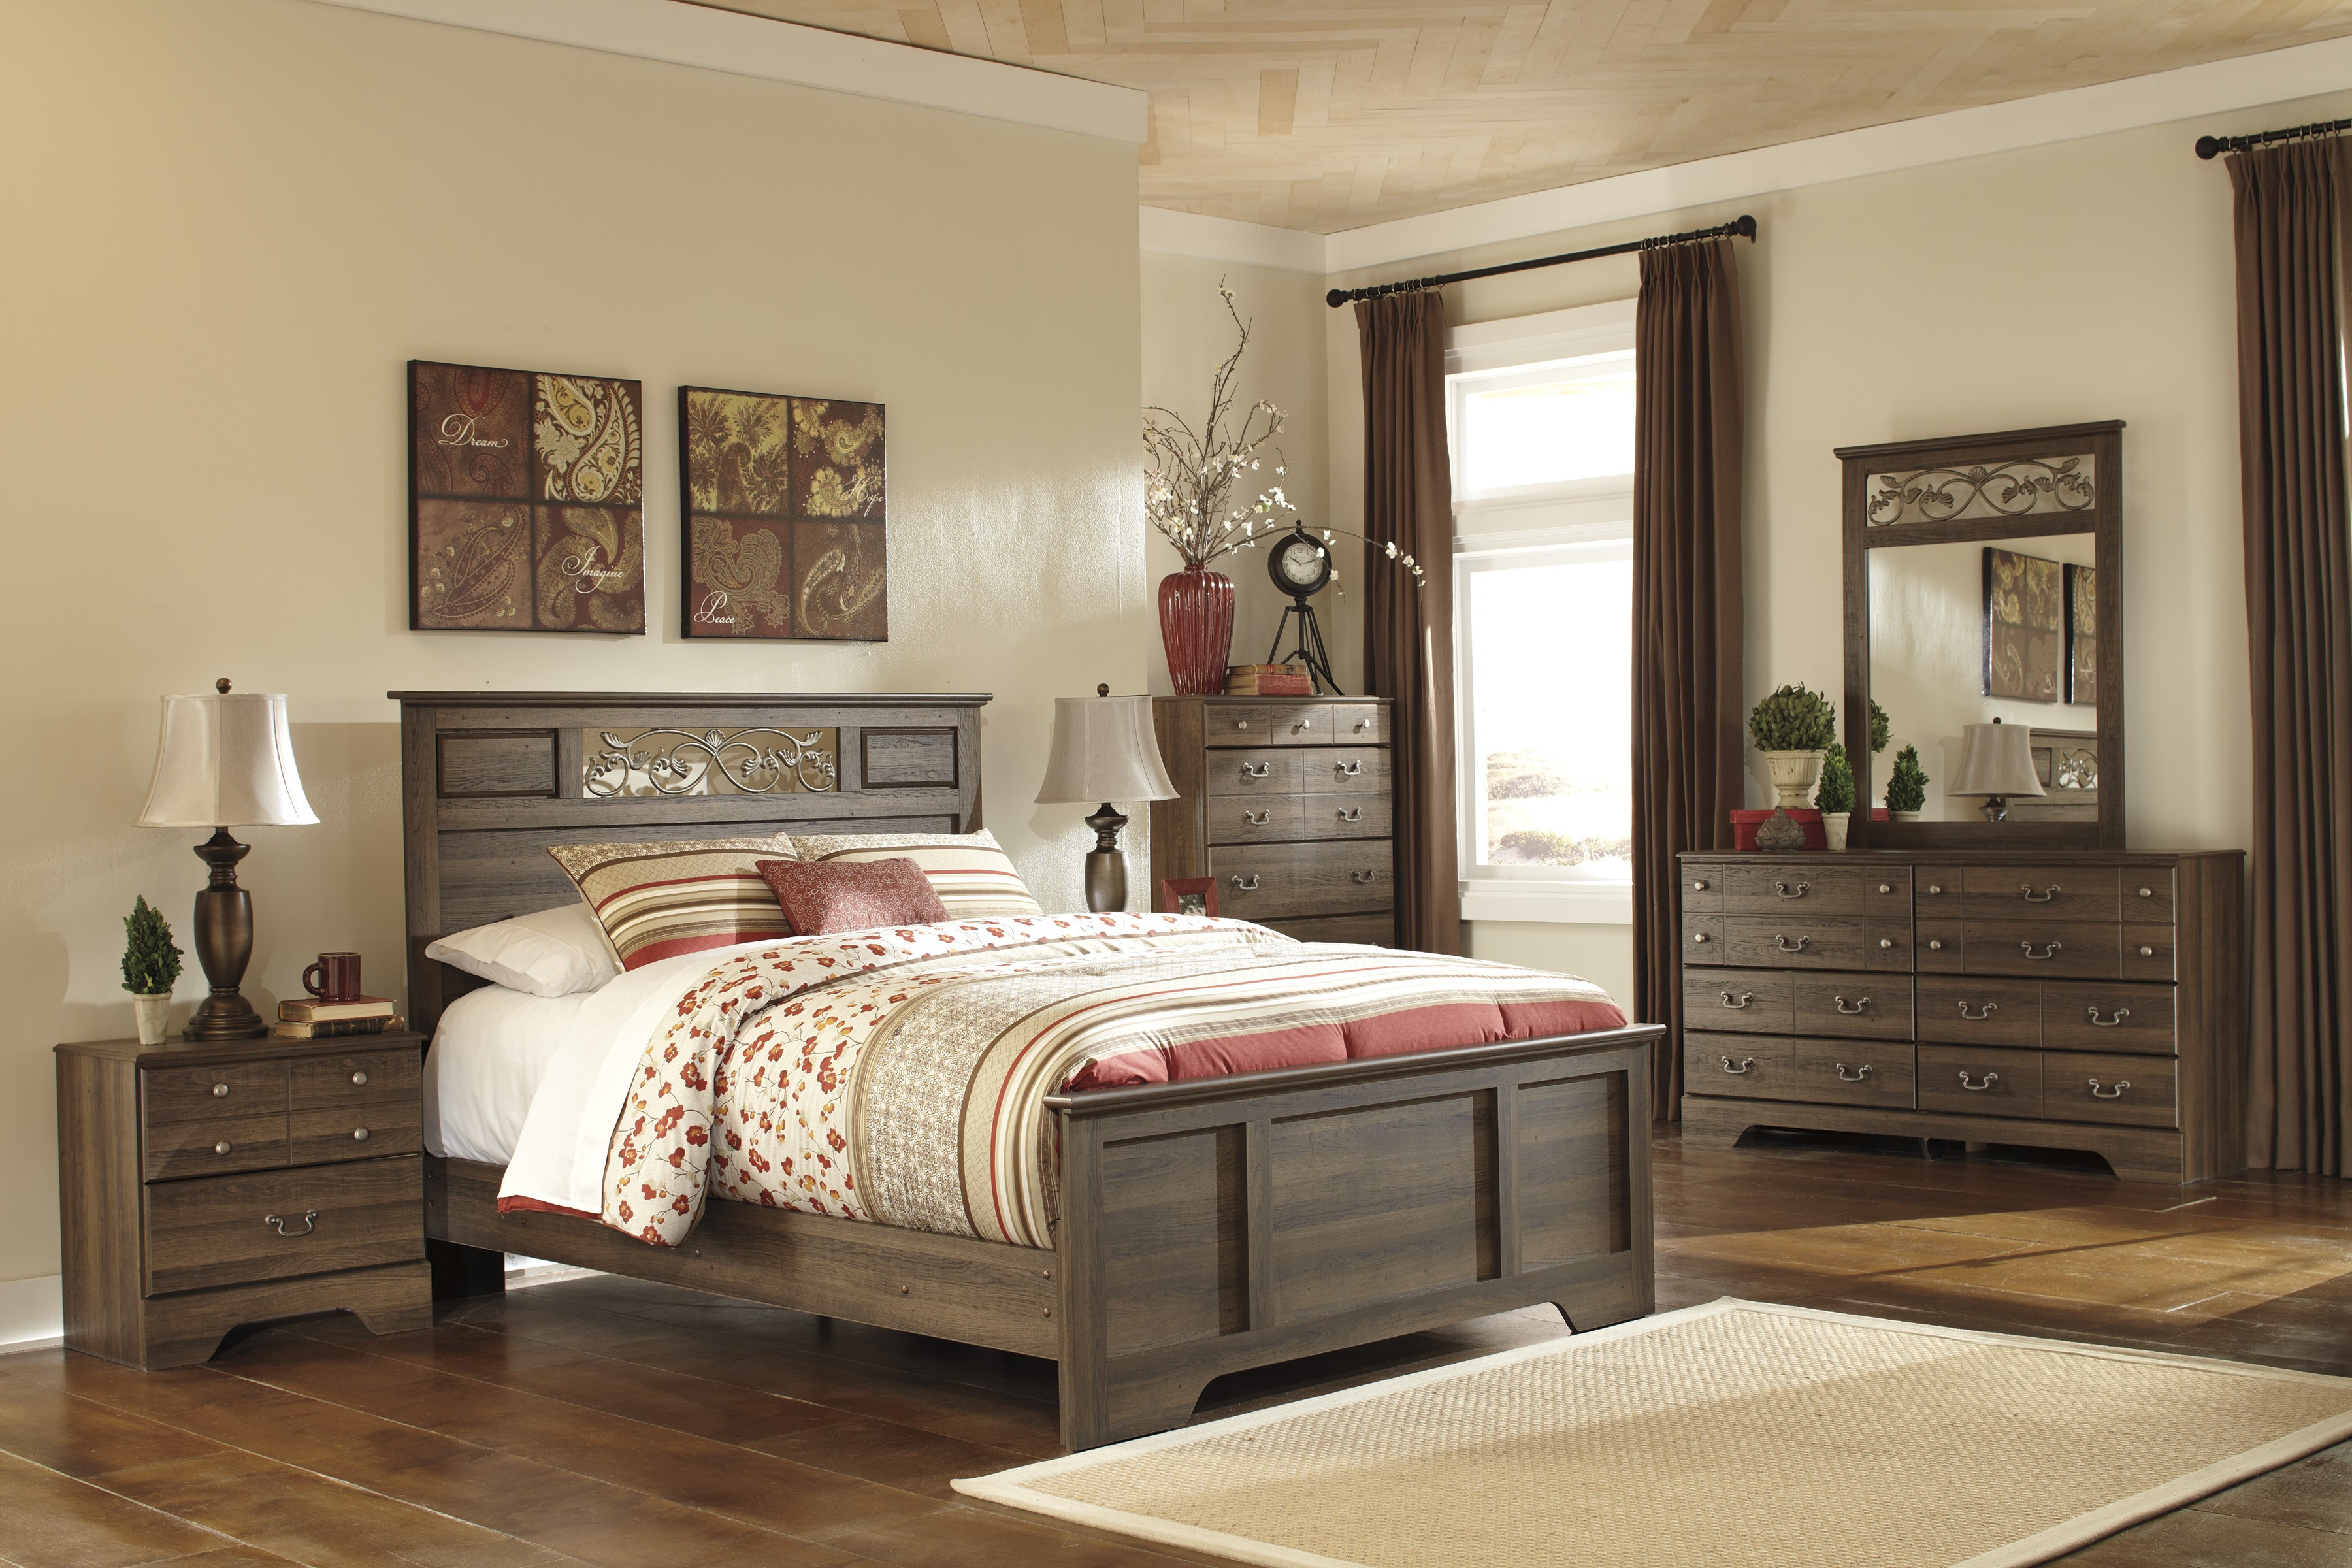 Best ideas about Ashley Bedroom Furniture . Save or Pin Allymore Panel Bedroom Set from Ashley B216 55 51 98 Now.